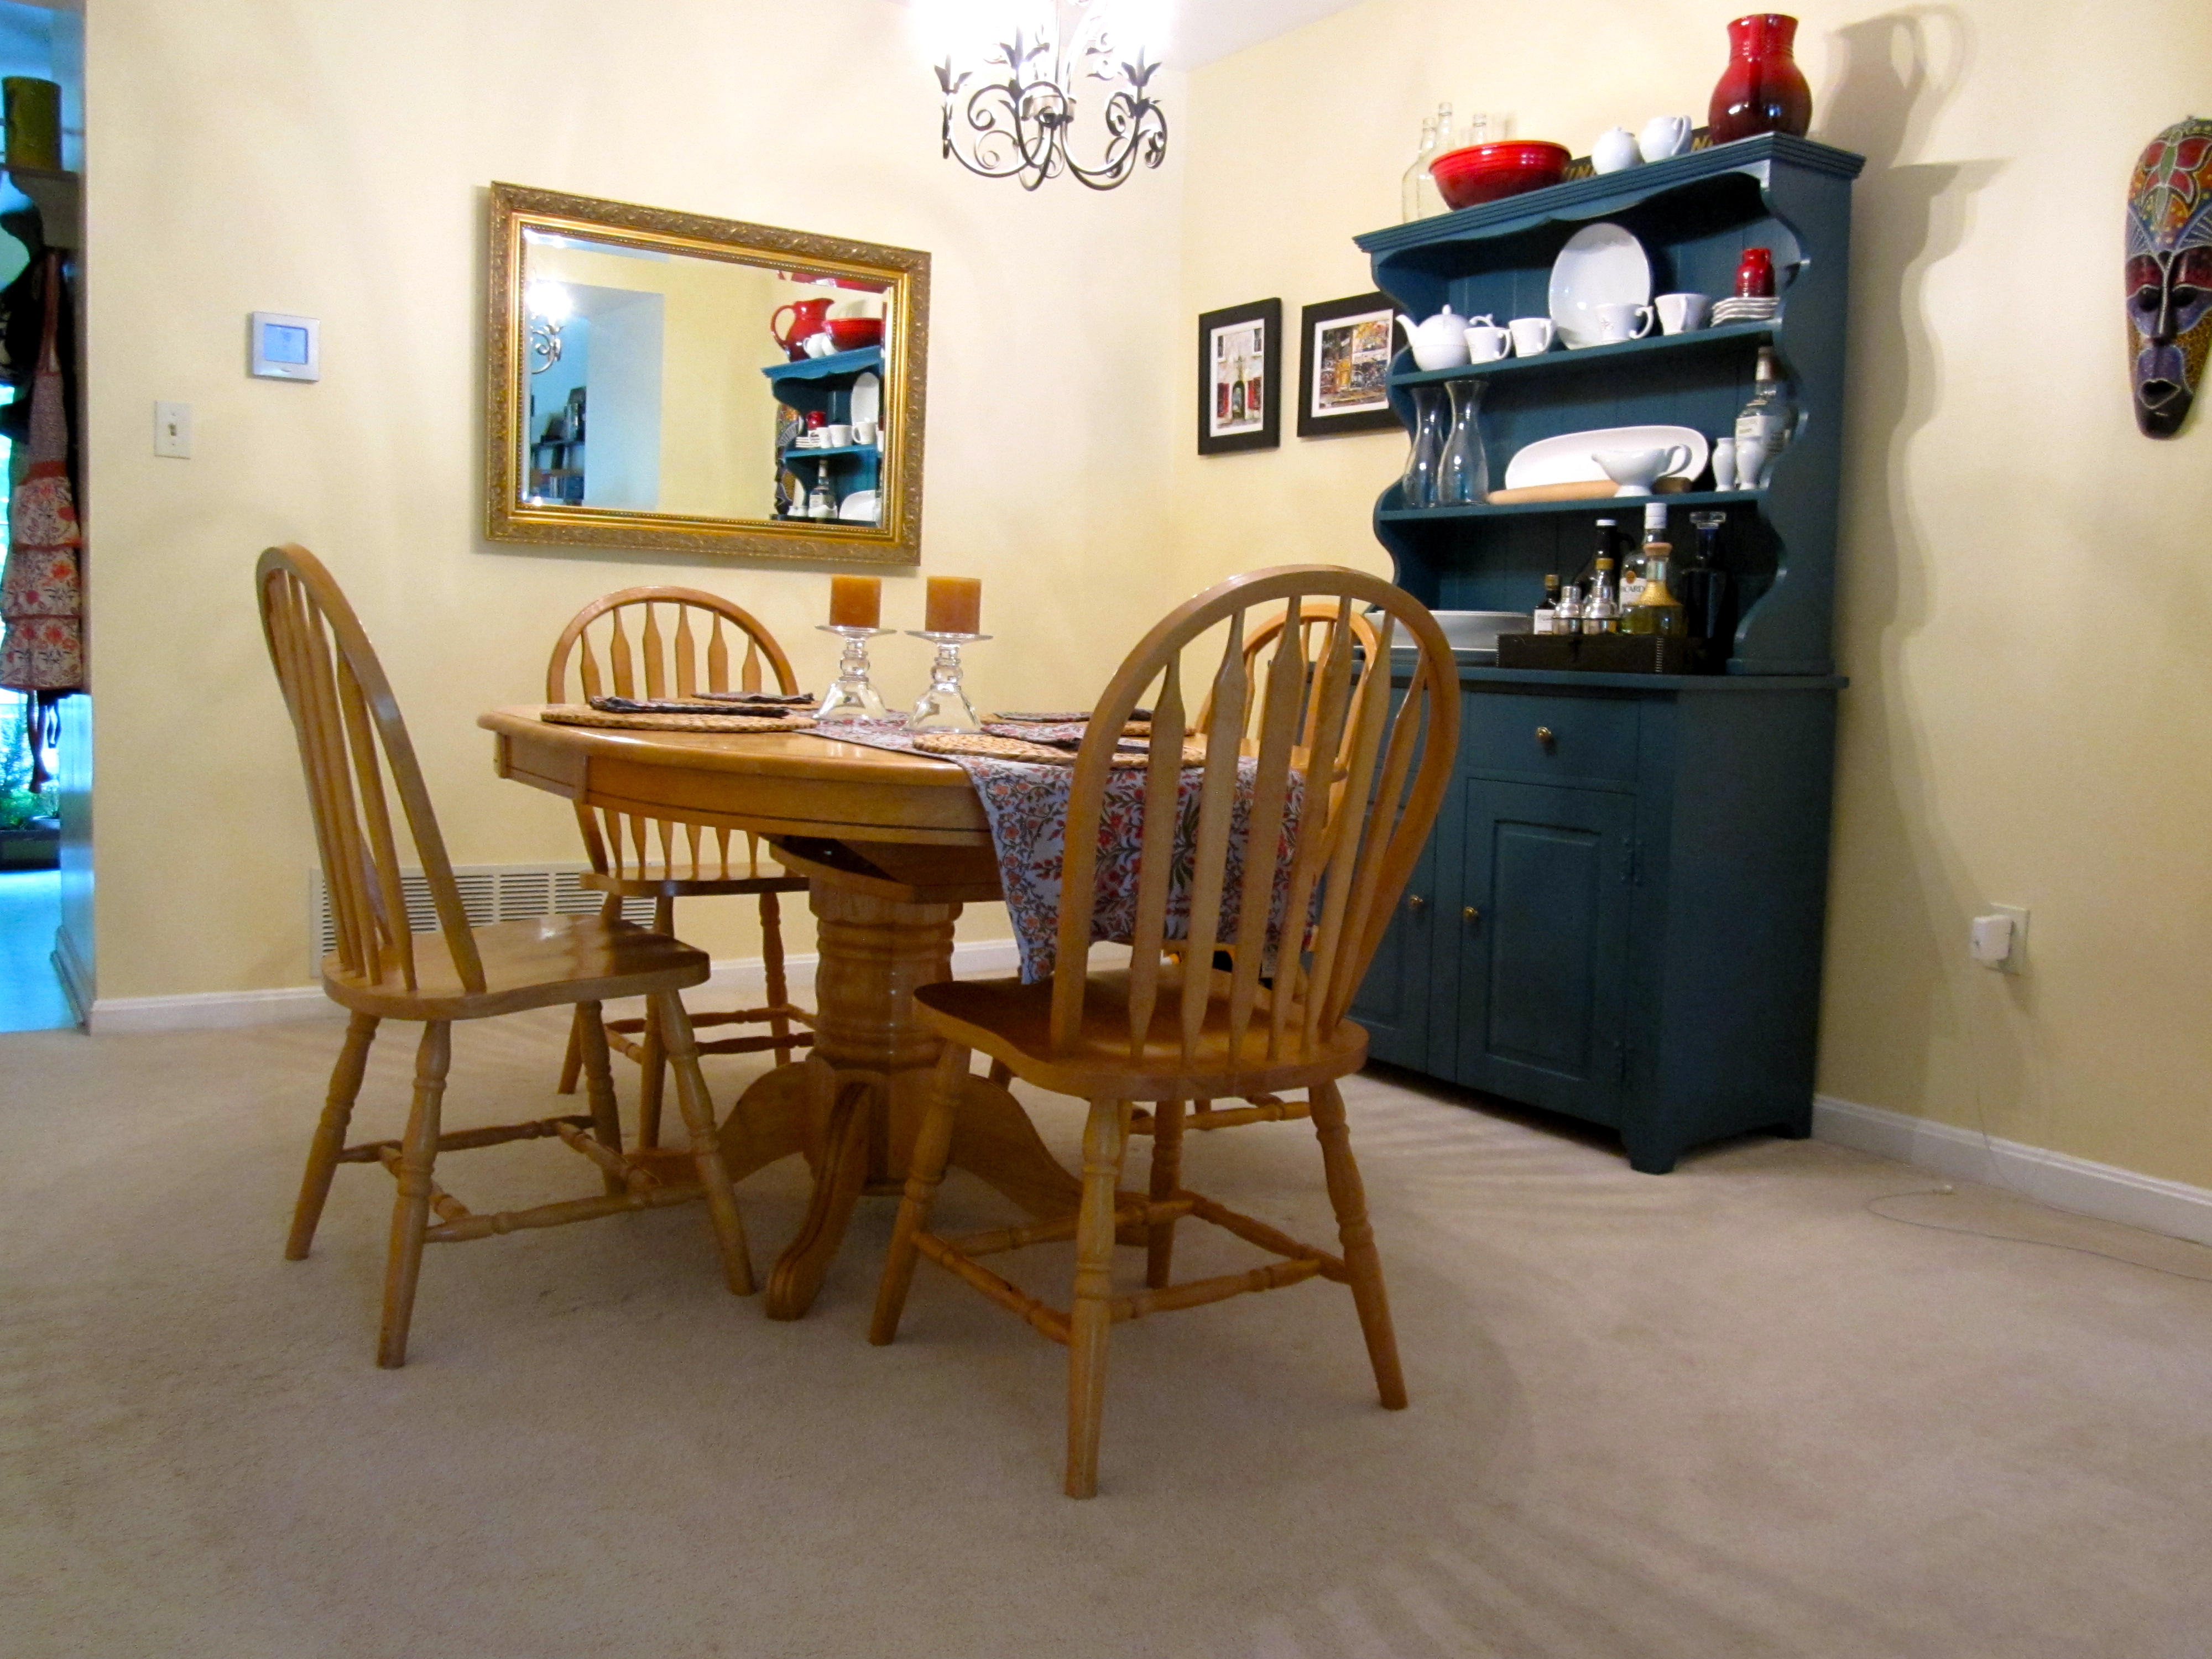 Here Is How The New Dining Room Set Looks In Our Space I Think This Fills Up A More Proportionate Way Like Darker Color Of